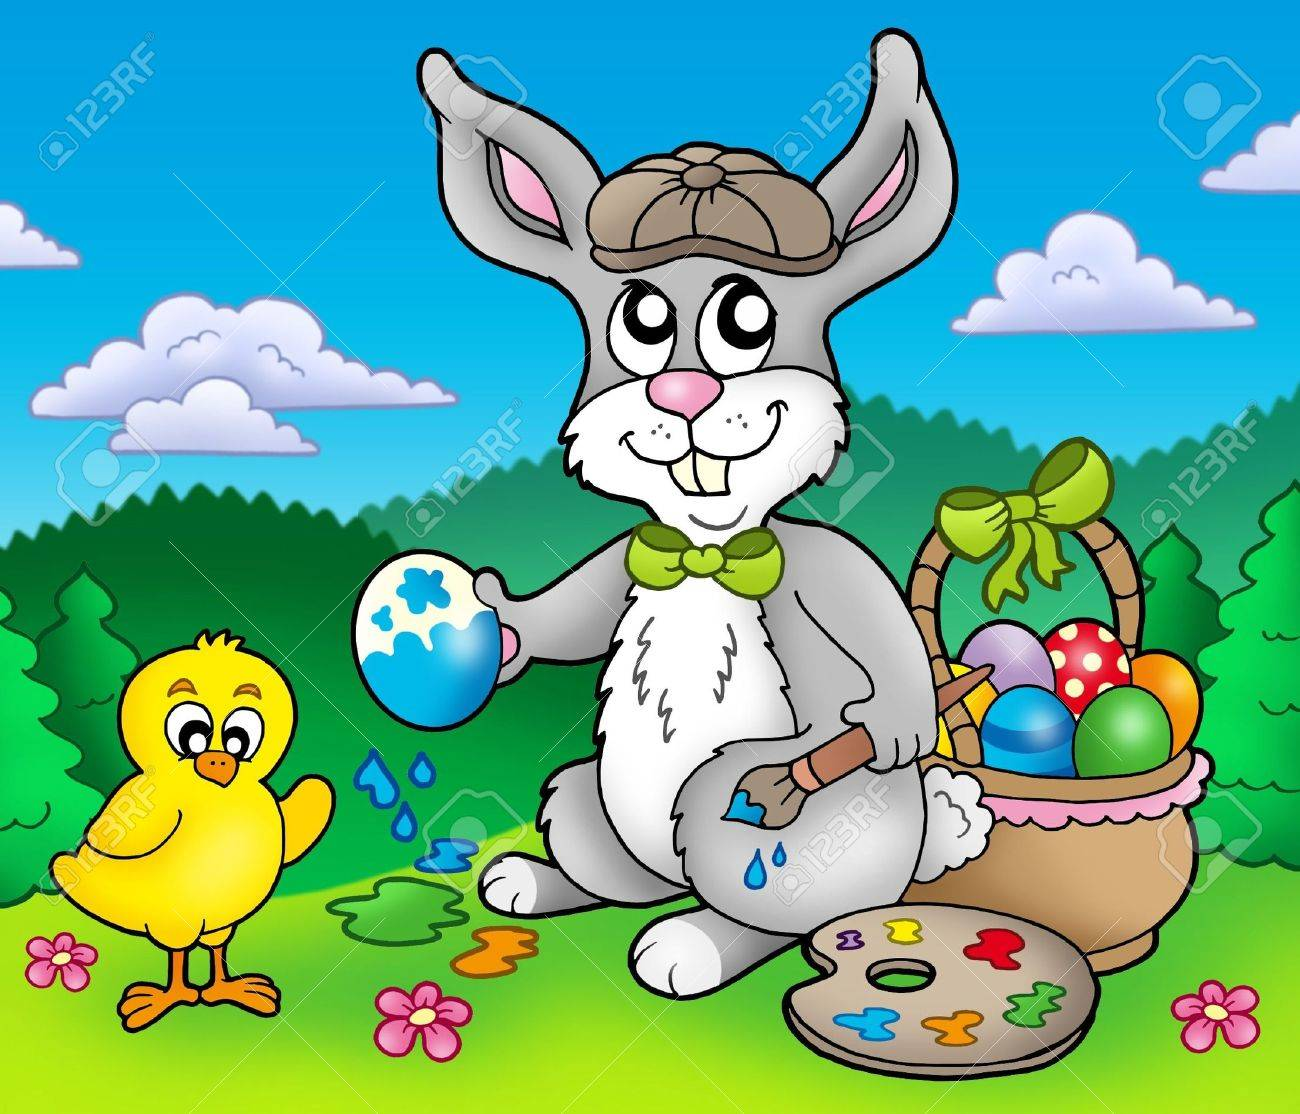 Easter bunny artist and chicken - color illustration. Stock Photo - 6335474